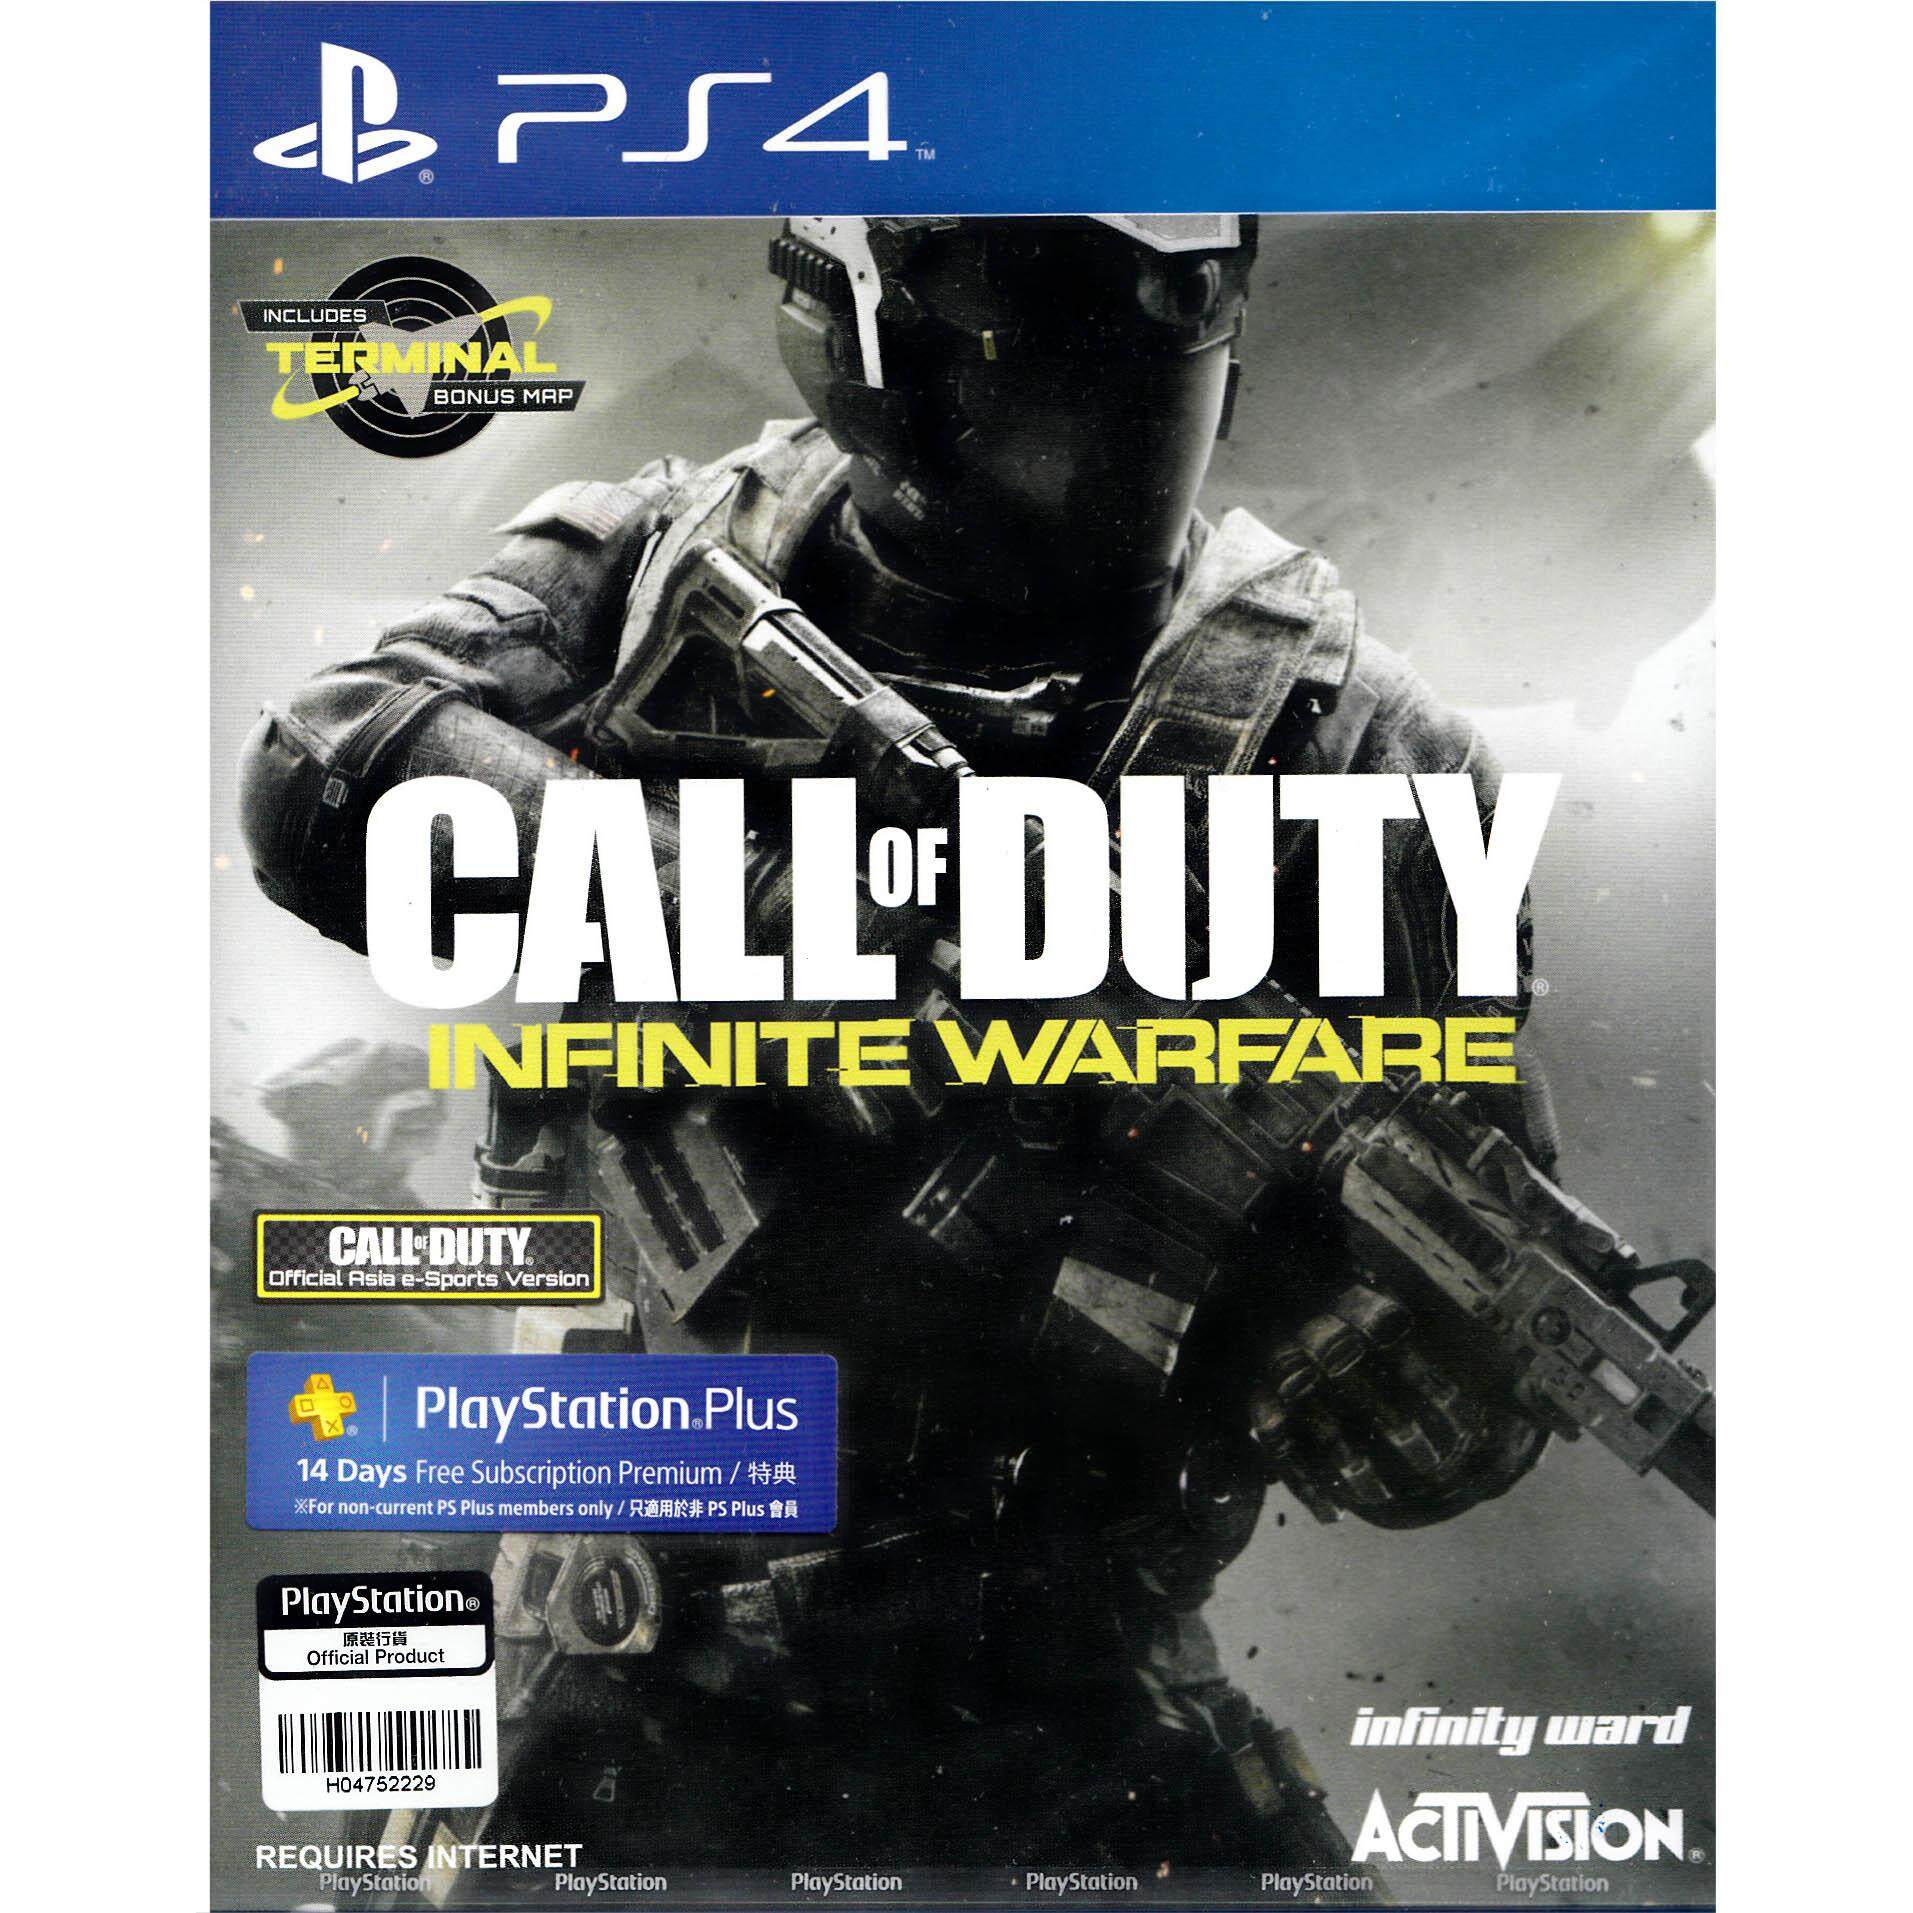 PS4 CALL OF DUTY: INFINITE WARFARE (CHINESE SUBS) (ASIA)